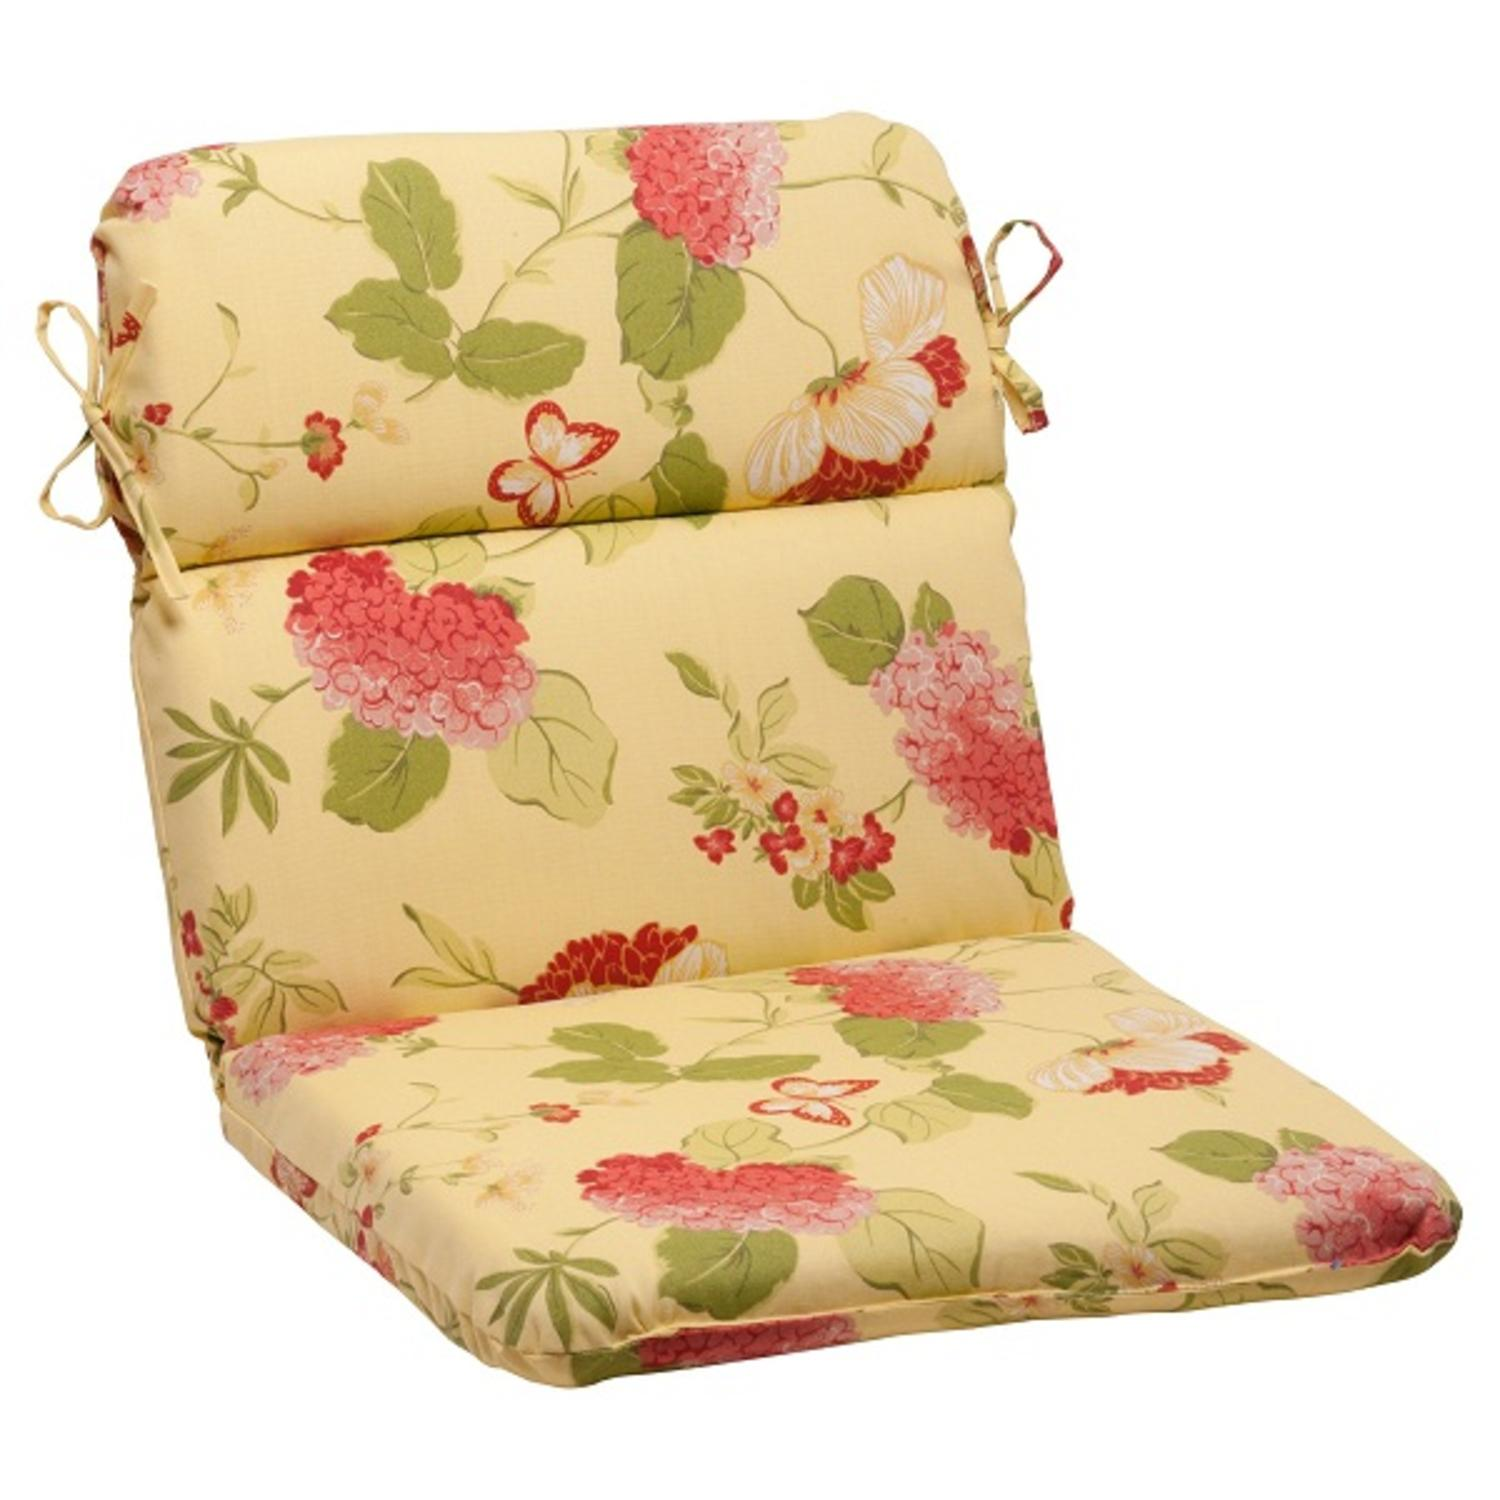 "40.5"" Solarium Bashful Blossom Outdoor Patio Furniture Rounded Chair Cushion"